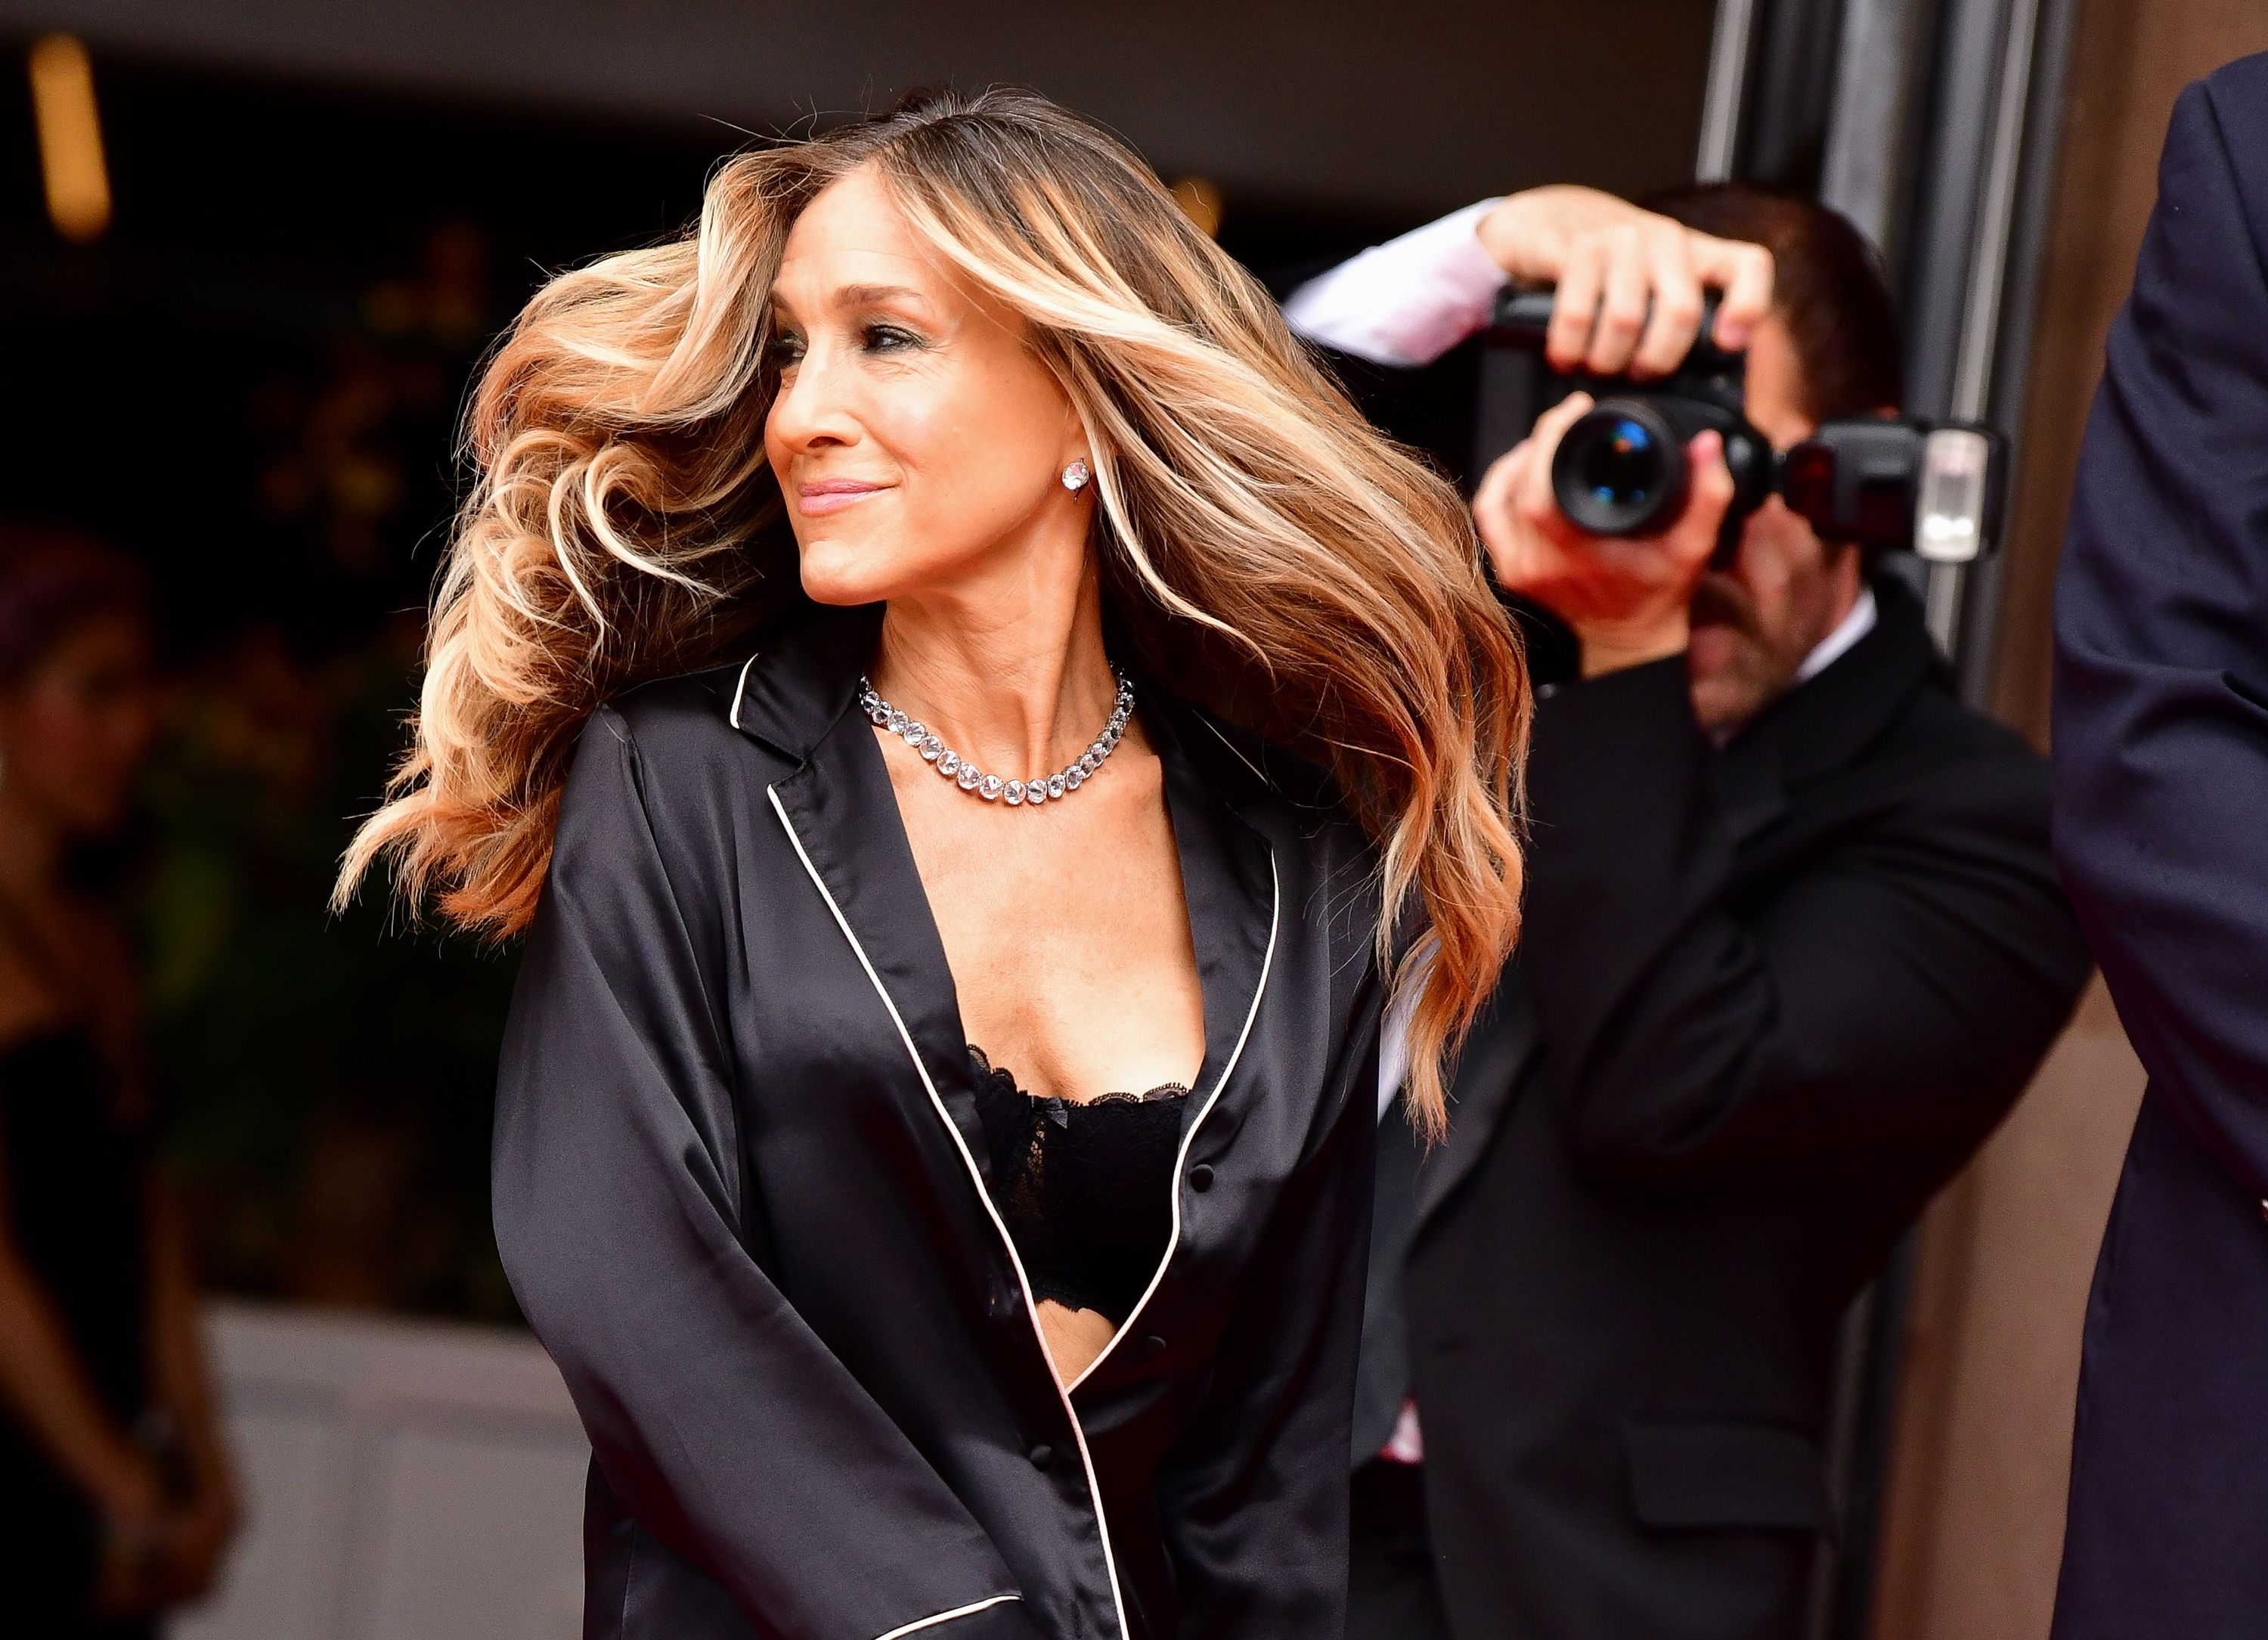 A Very Sarah Jessica Parker History of Wearing Lingerie On-Screen